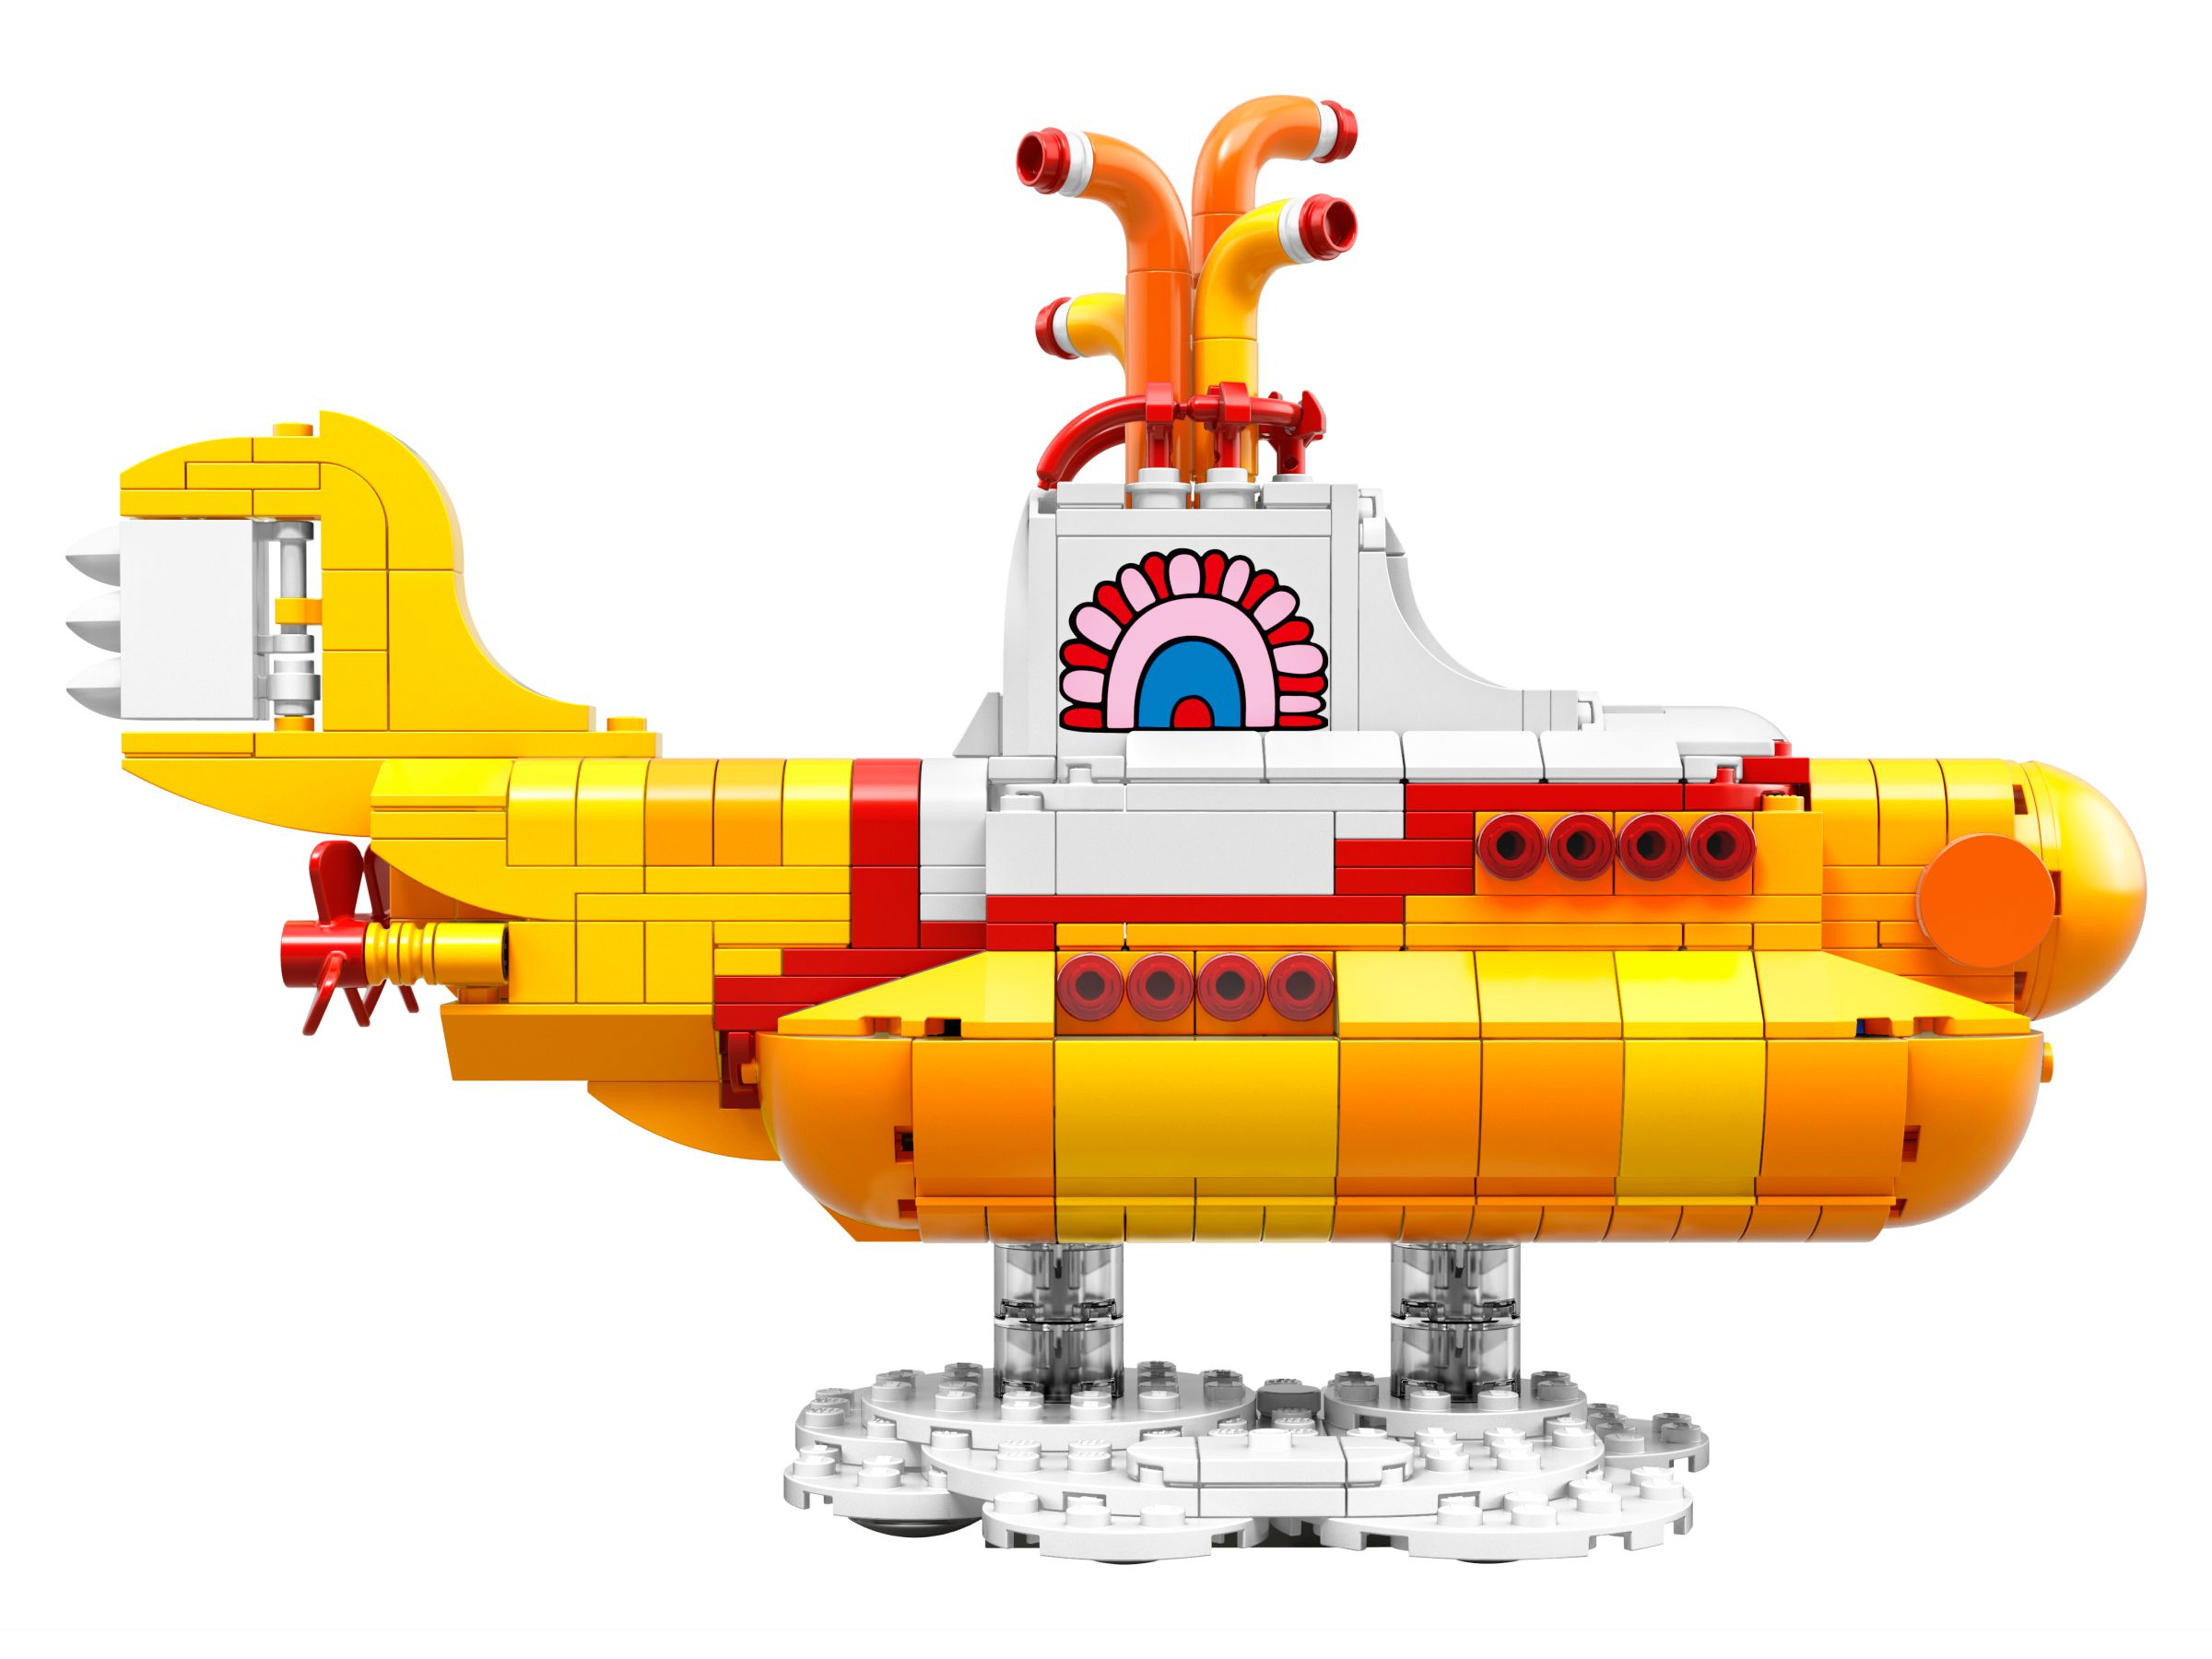 LEGO Ideas 21306 Yellow Submarine LEGO_21306_alt2.jpg